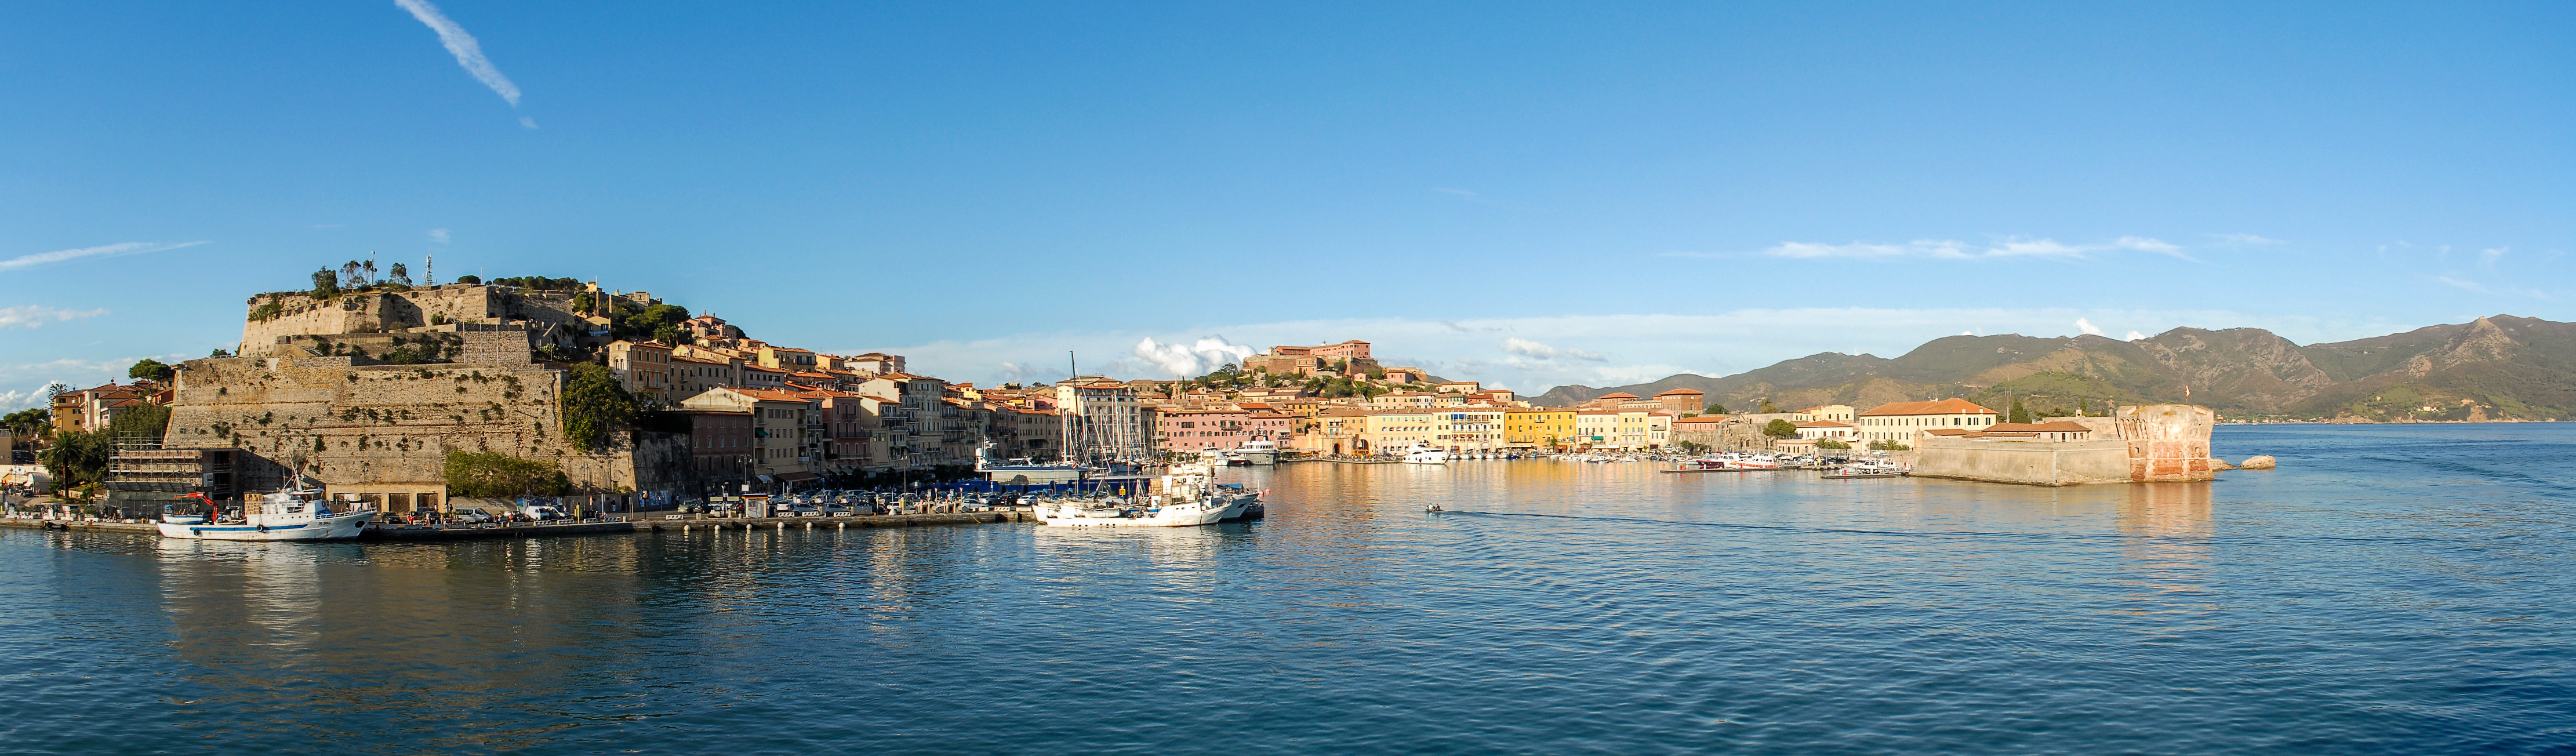 elba island is one of the most beautiful islands in the mediterranean ...